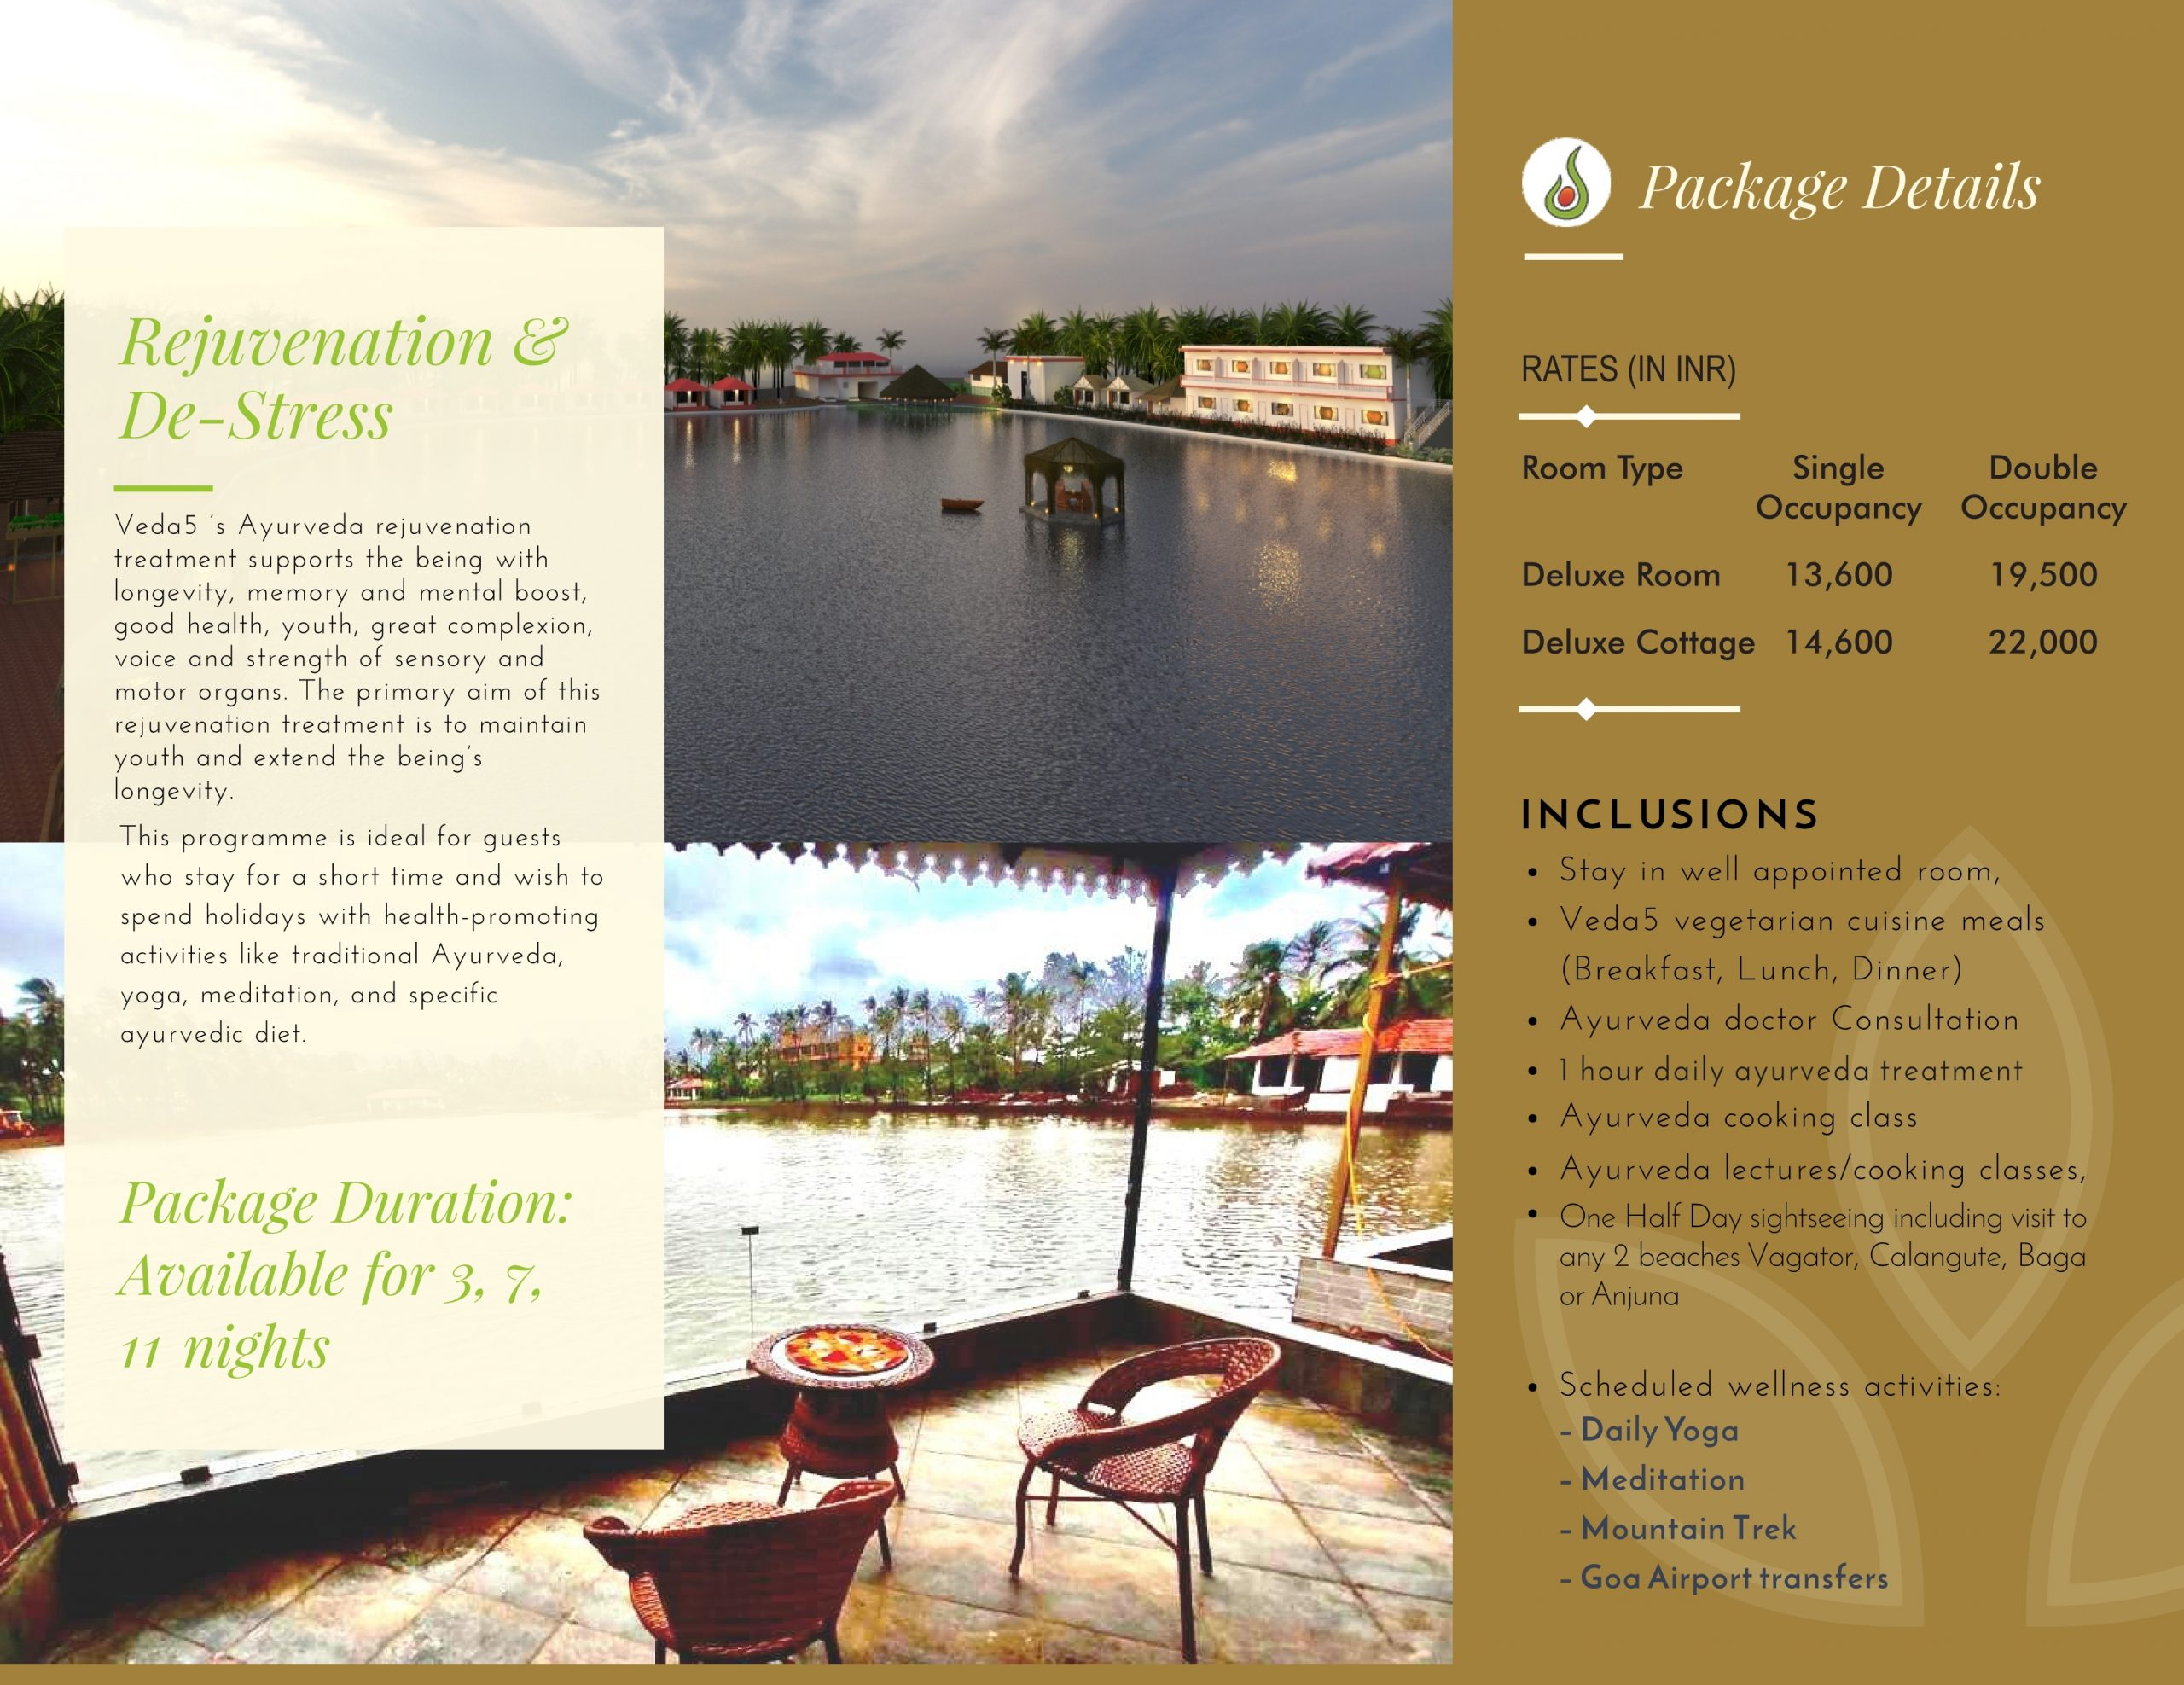 Veda5 Wellness Retreat and Spa in Arambol Goa India for Rejuvenation and De-stress Ayurveda Treatments and Yoga and Hotel Resort for Vacation